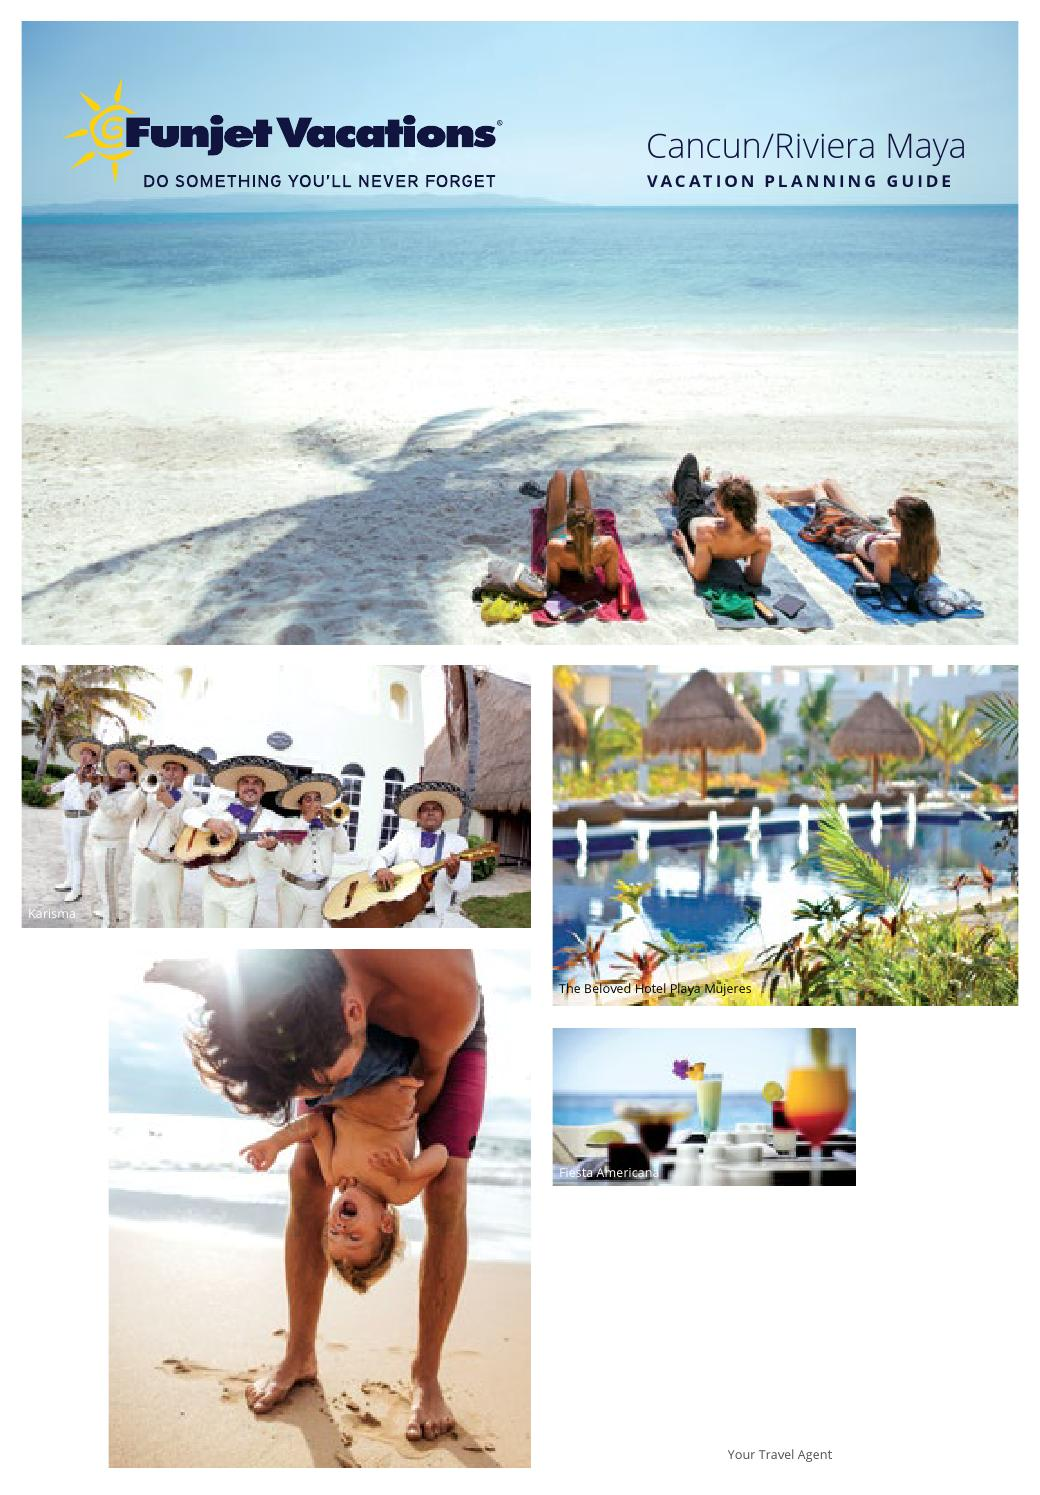 CancunRiviera Maya Vacation Planning Guide by Funjet